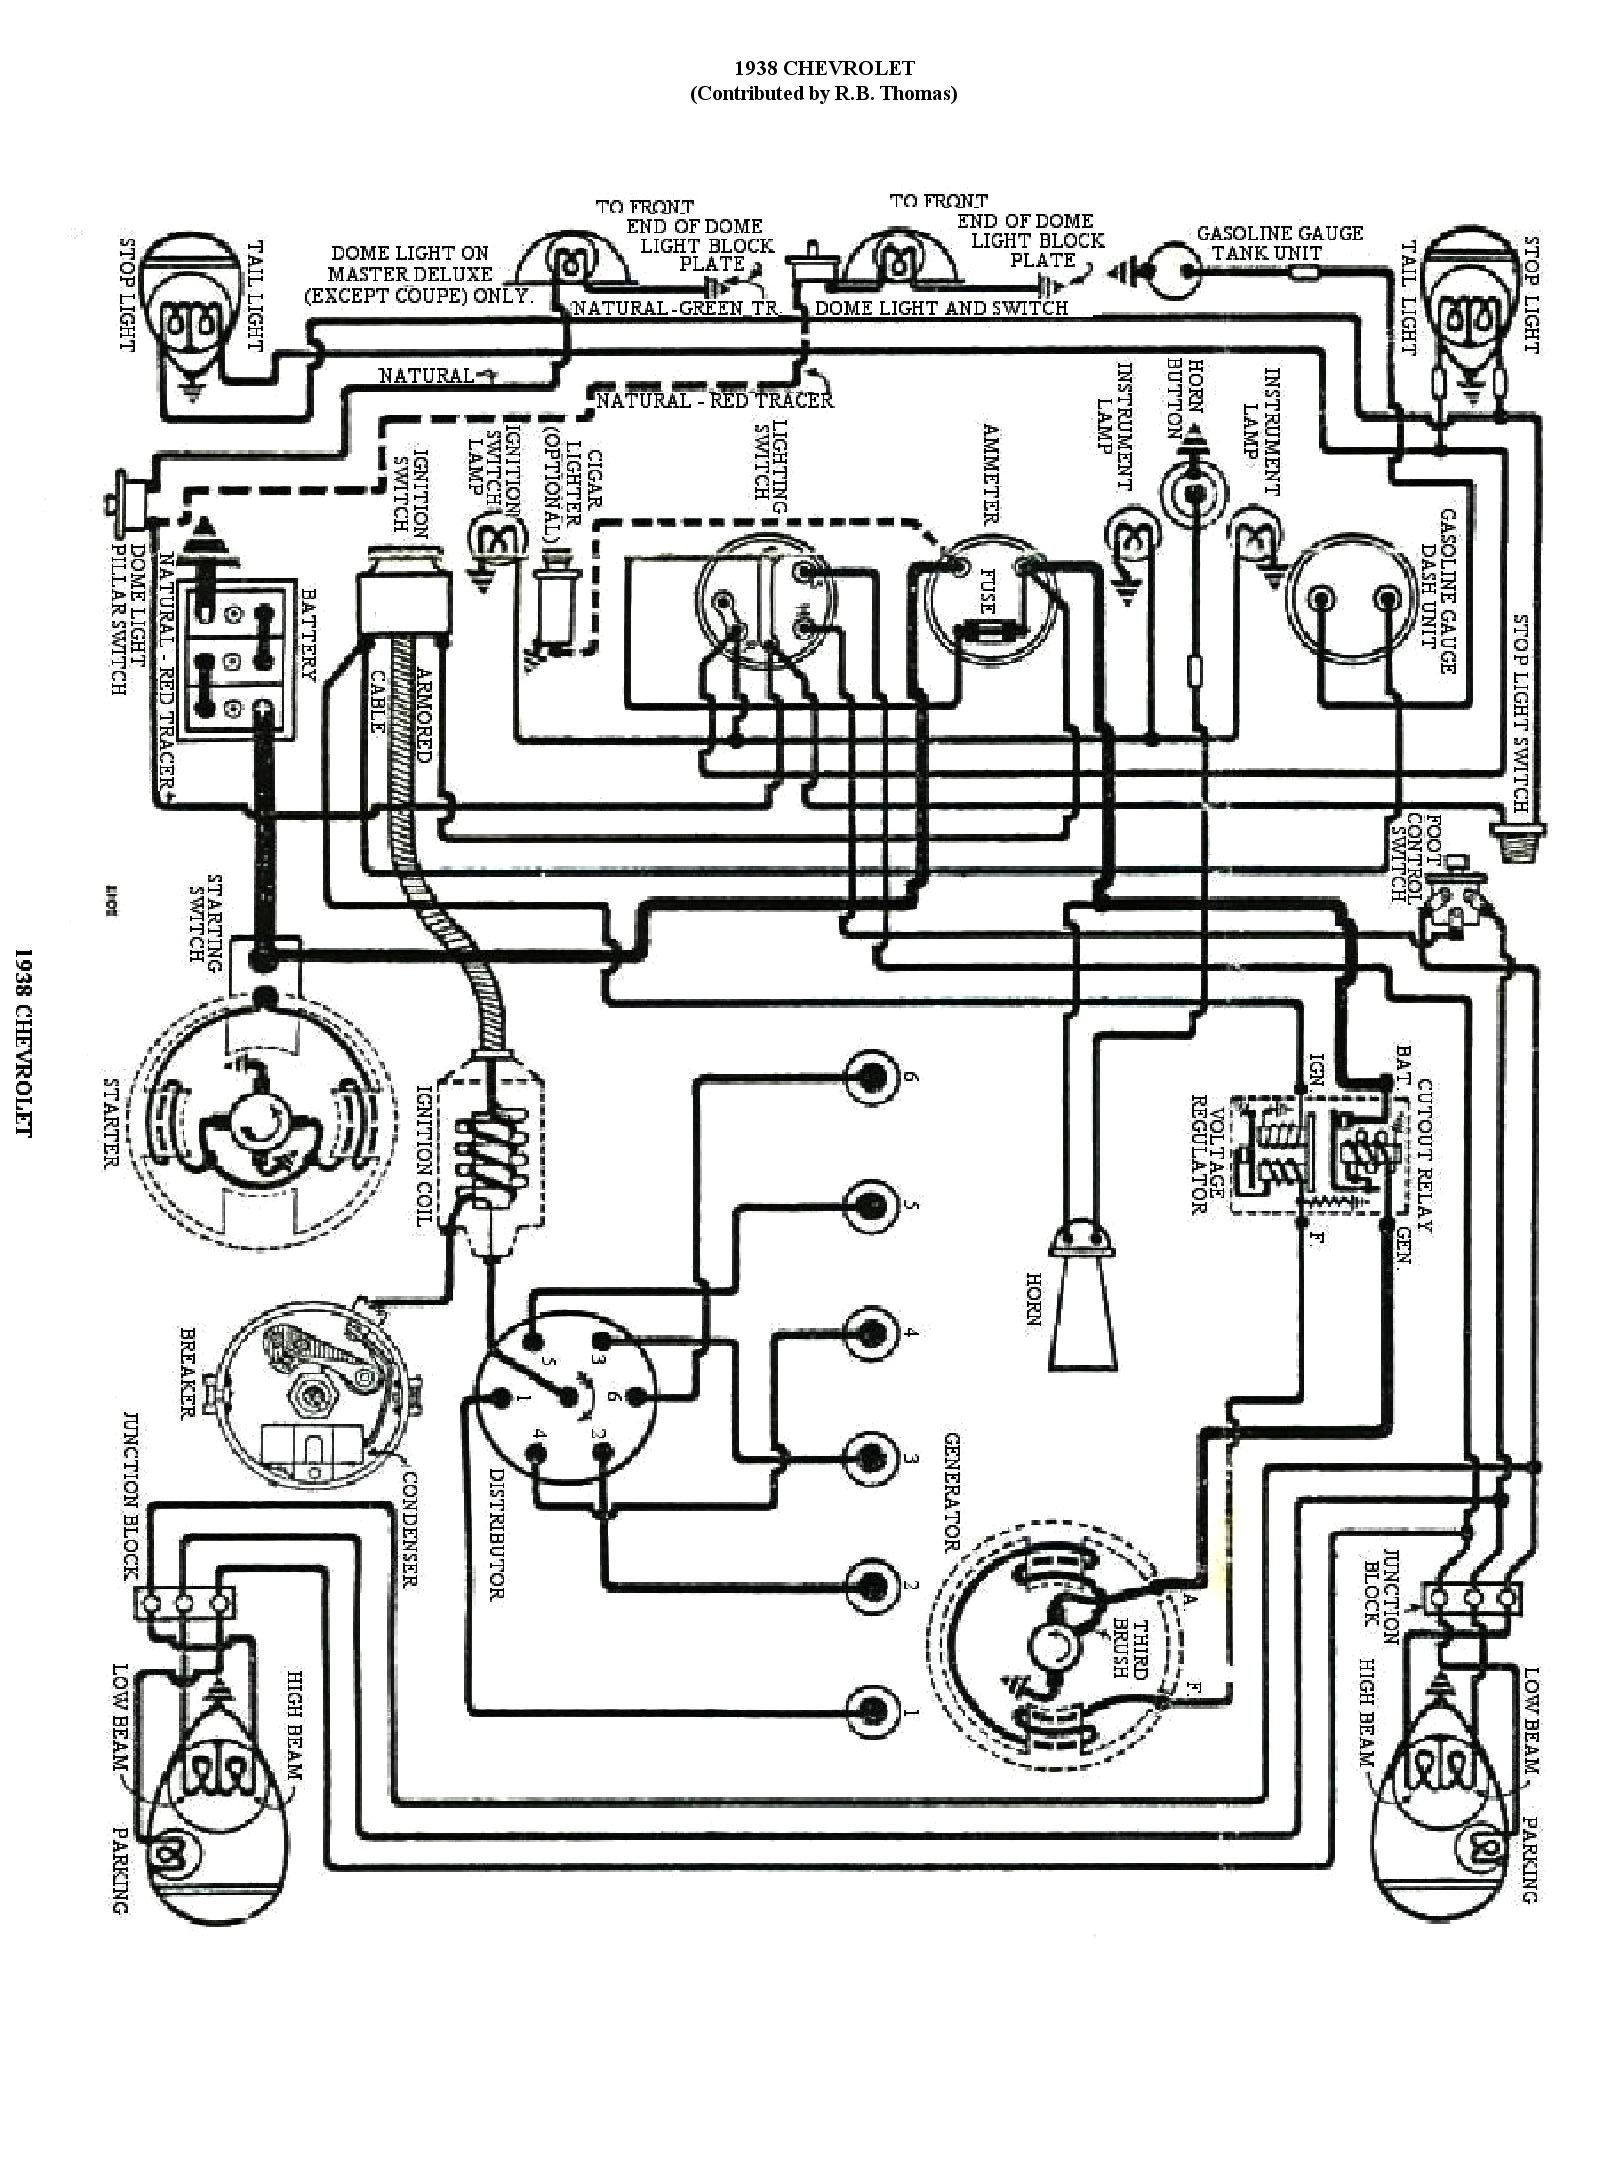 38wiring chevy wiring diagrams 2010 Buick Lacrosse Wiring-Diagram at mifinder.co